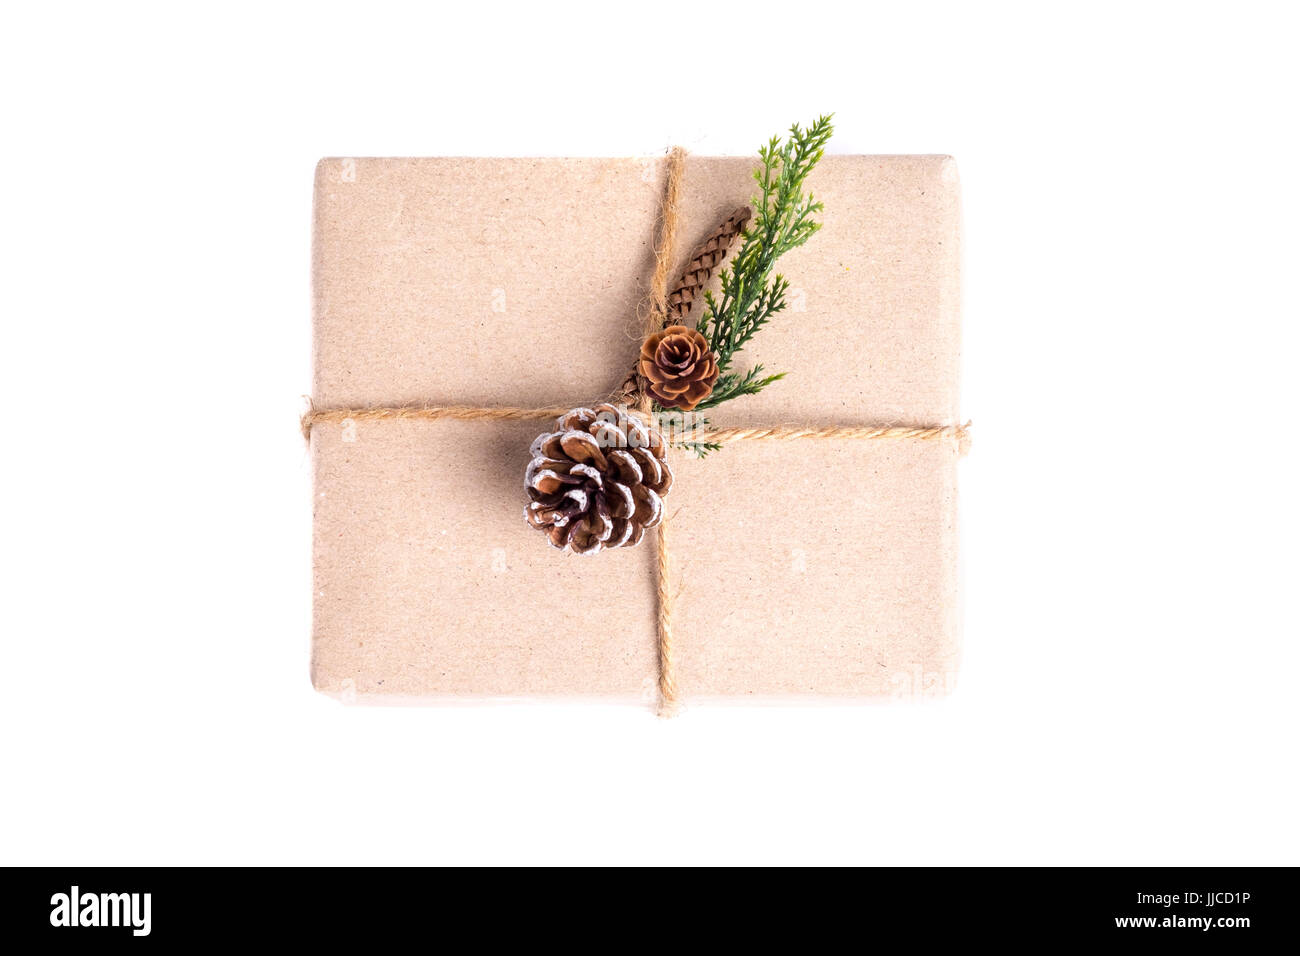 Brown paper craft warped on present box decorate with pine cone and green leaf isolated on white background,Gift - Stock Image